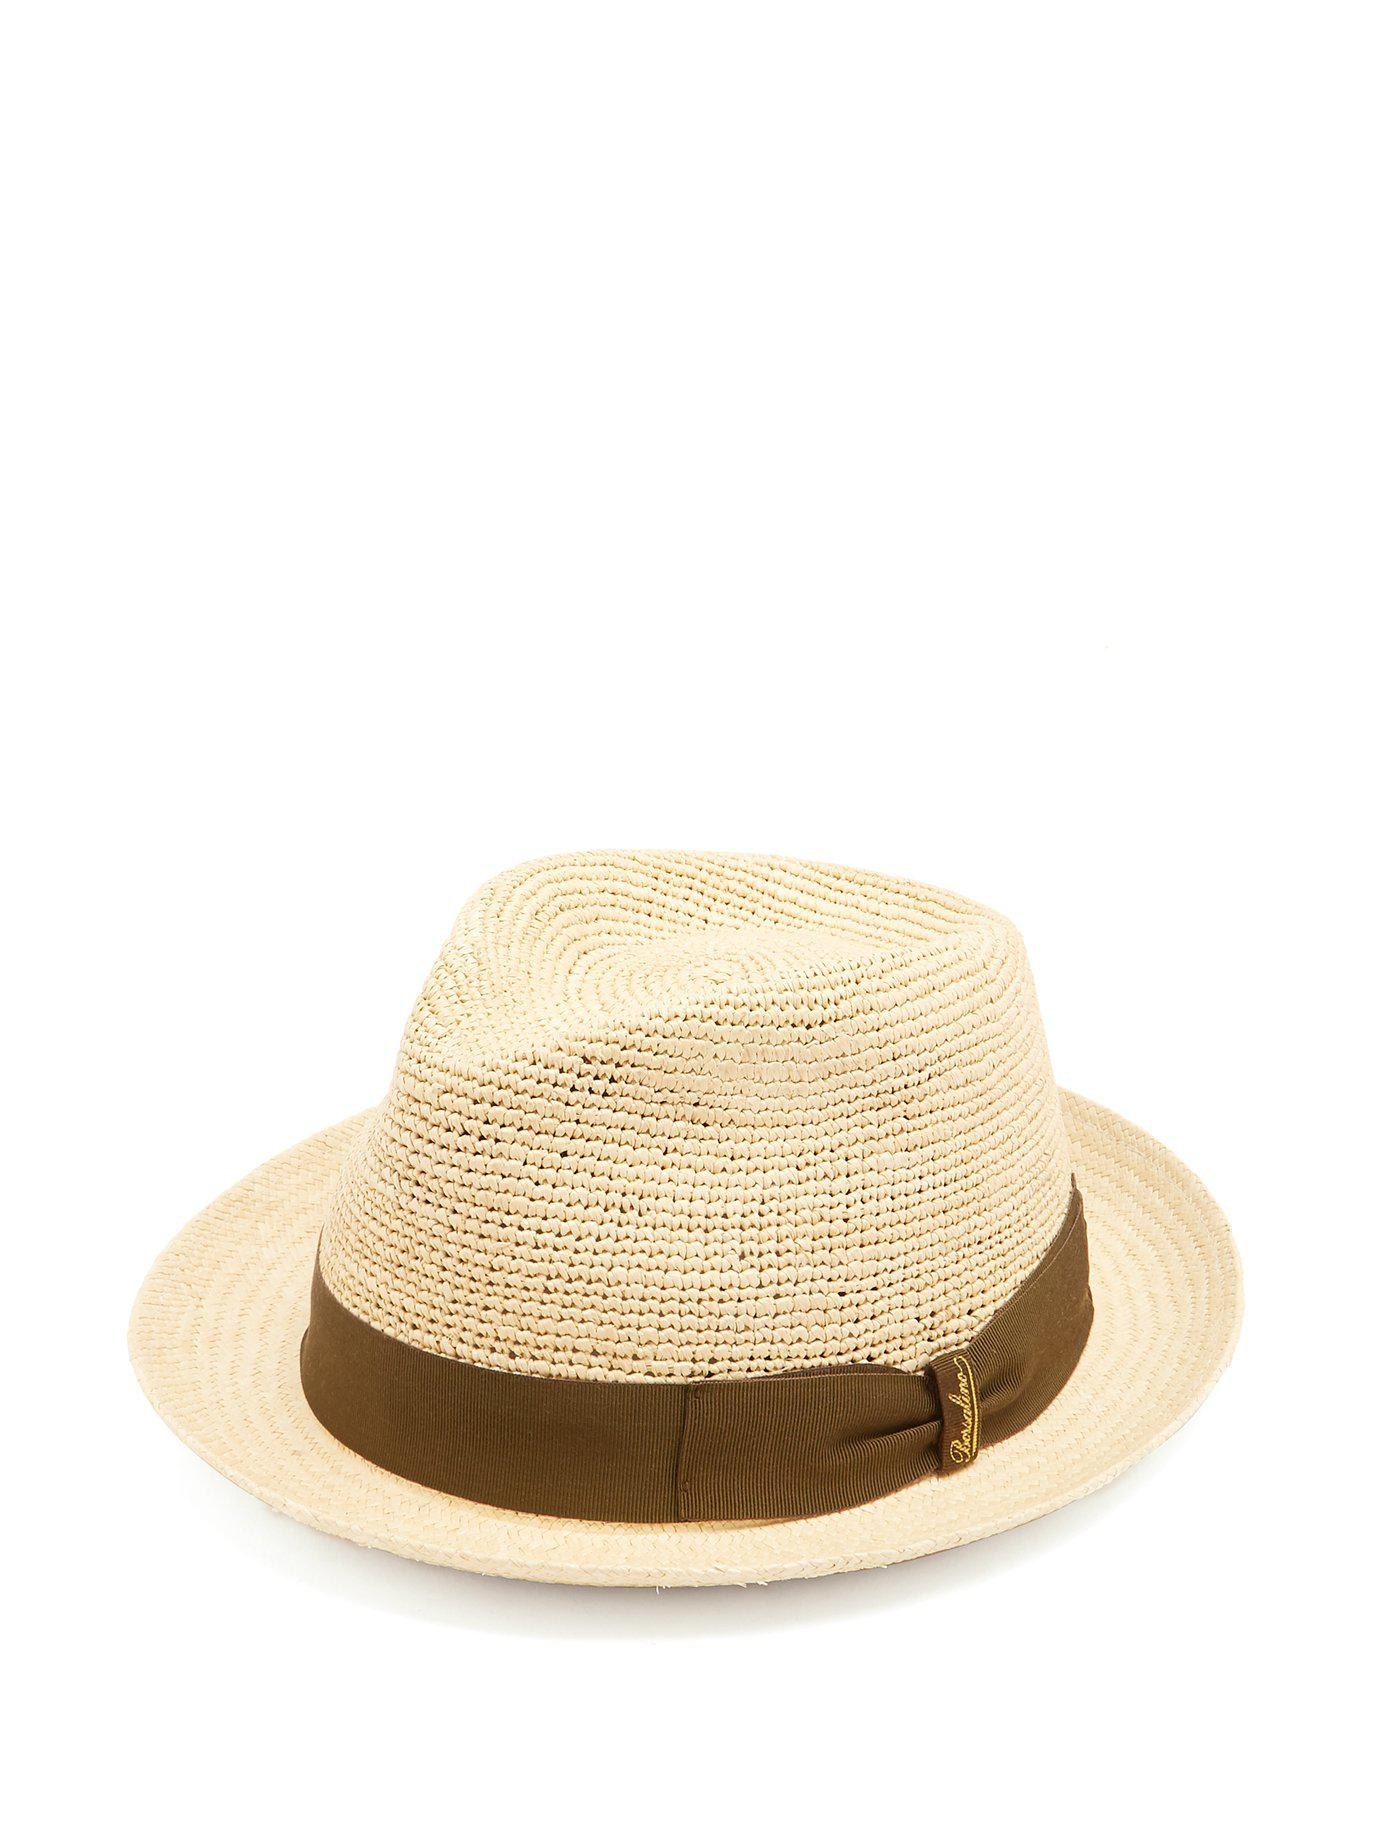 cef5a506a1a Lyst - Borsalino Woven And Crochet Straw Panama Hat in Natural for Men